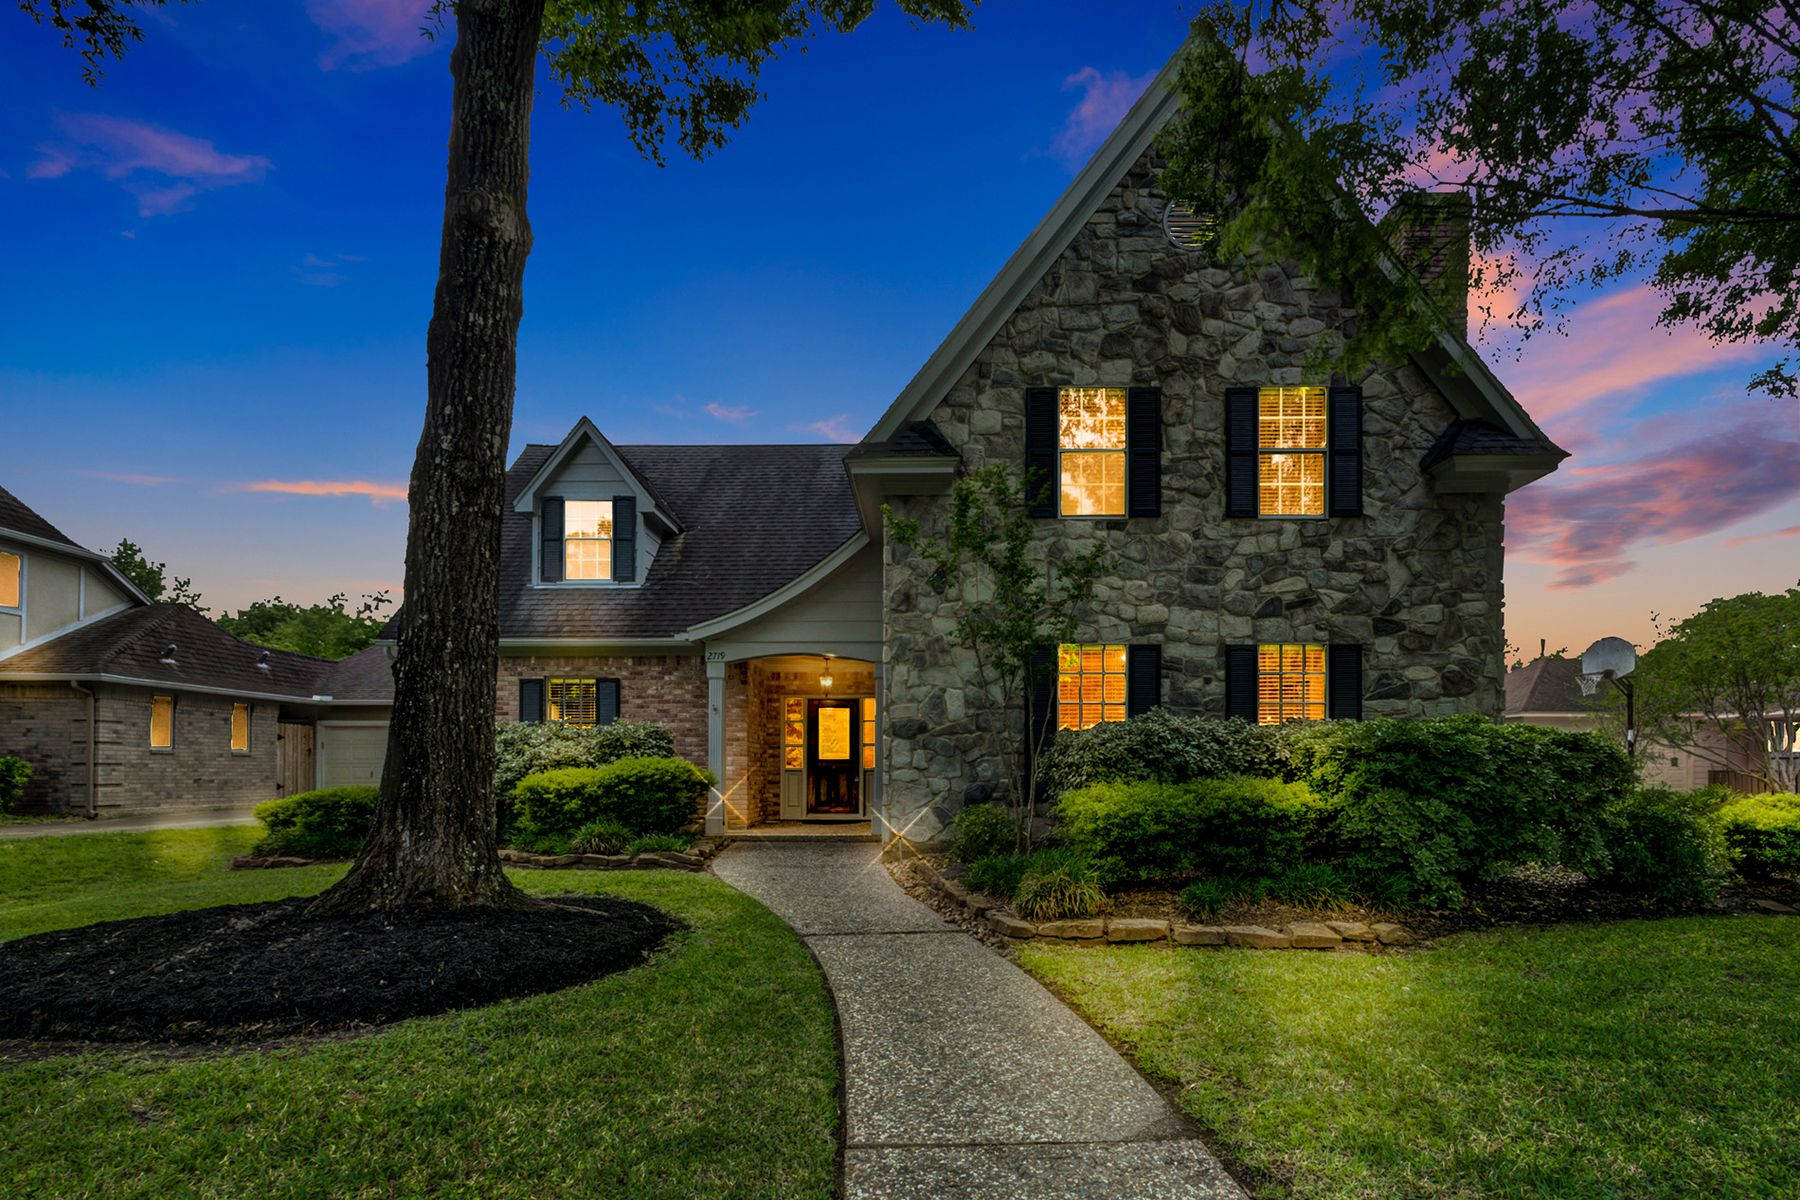 Single Family Homes for Active at 2719 Cedarville Drive Kingwood, Texas 77345 United States